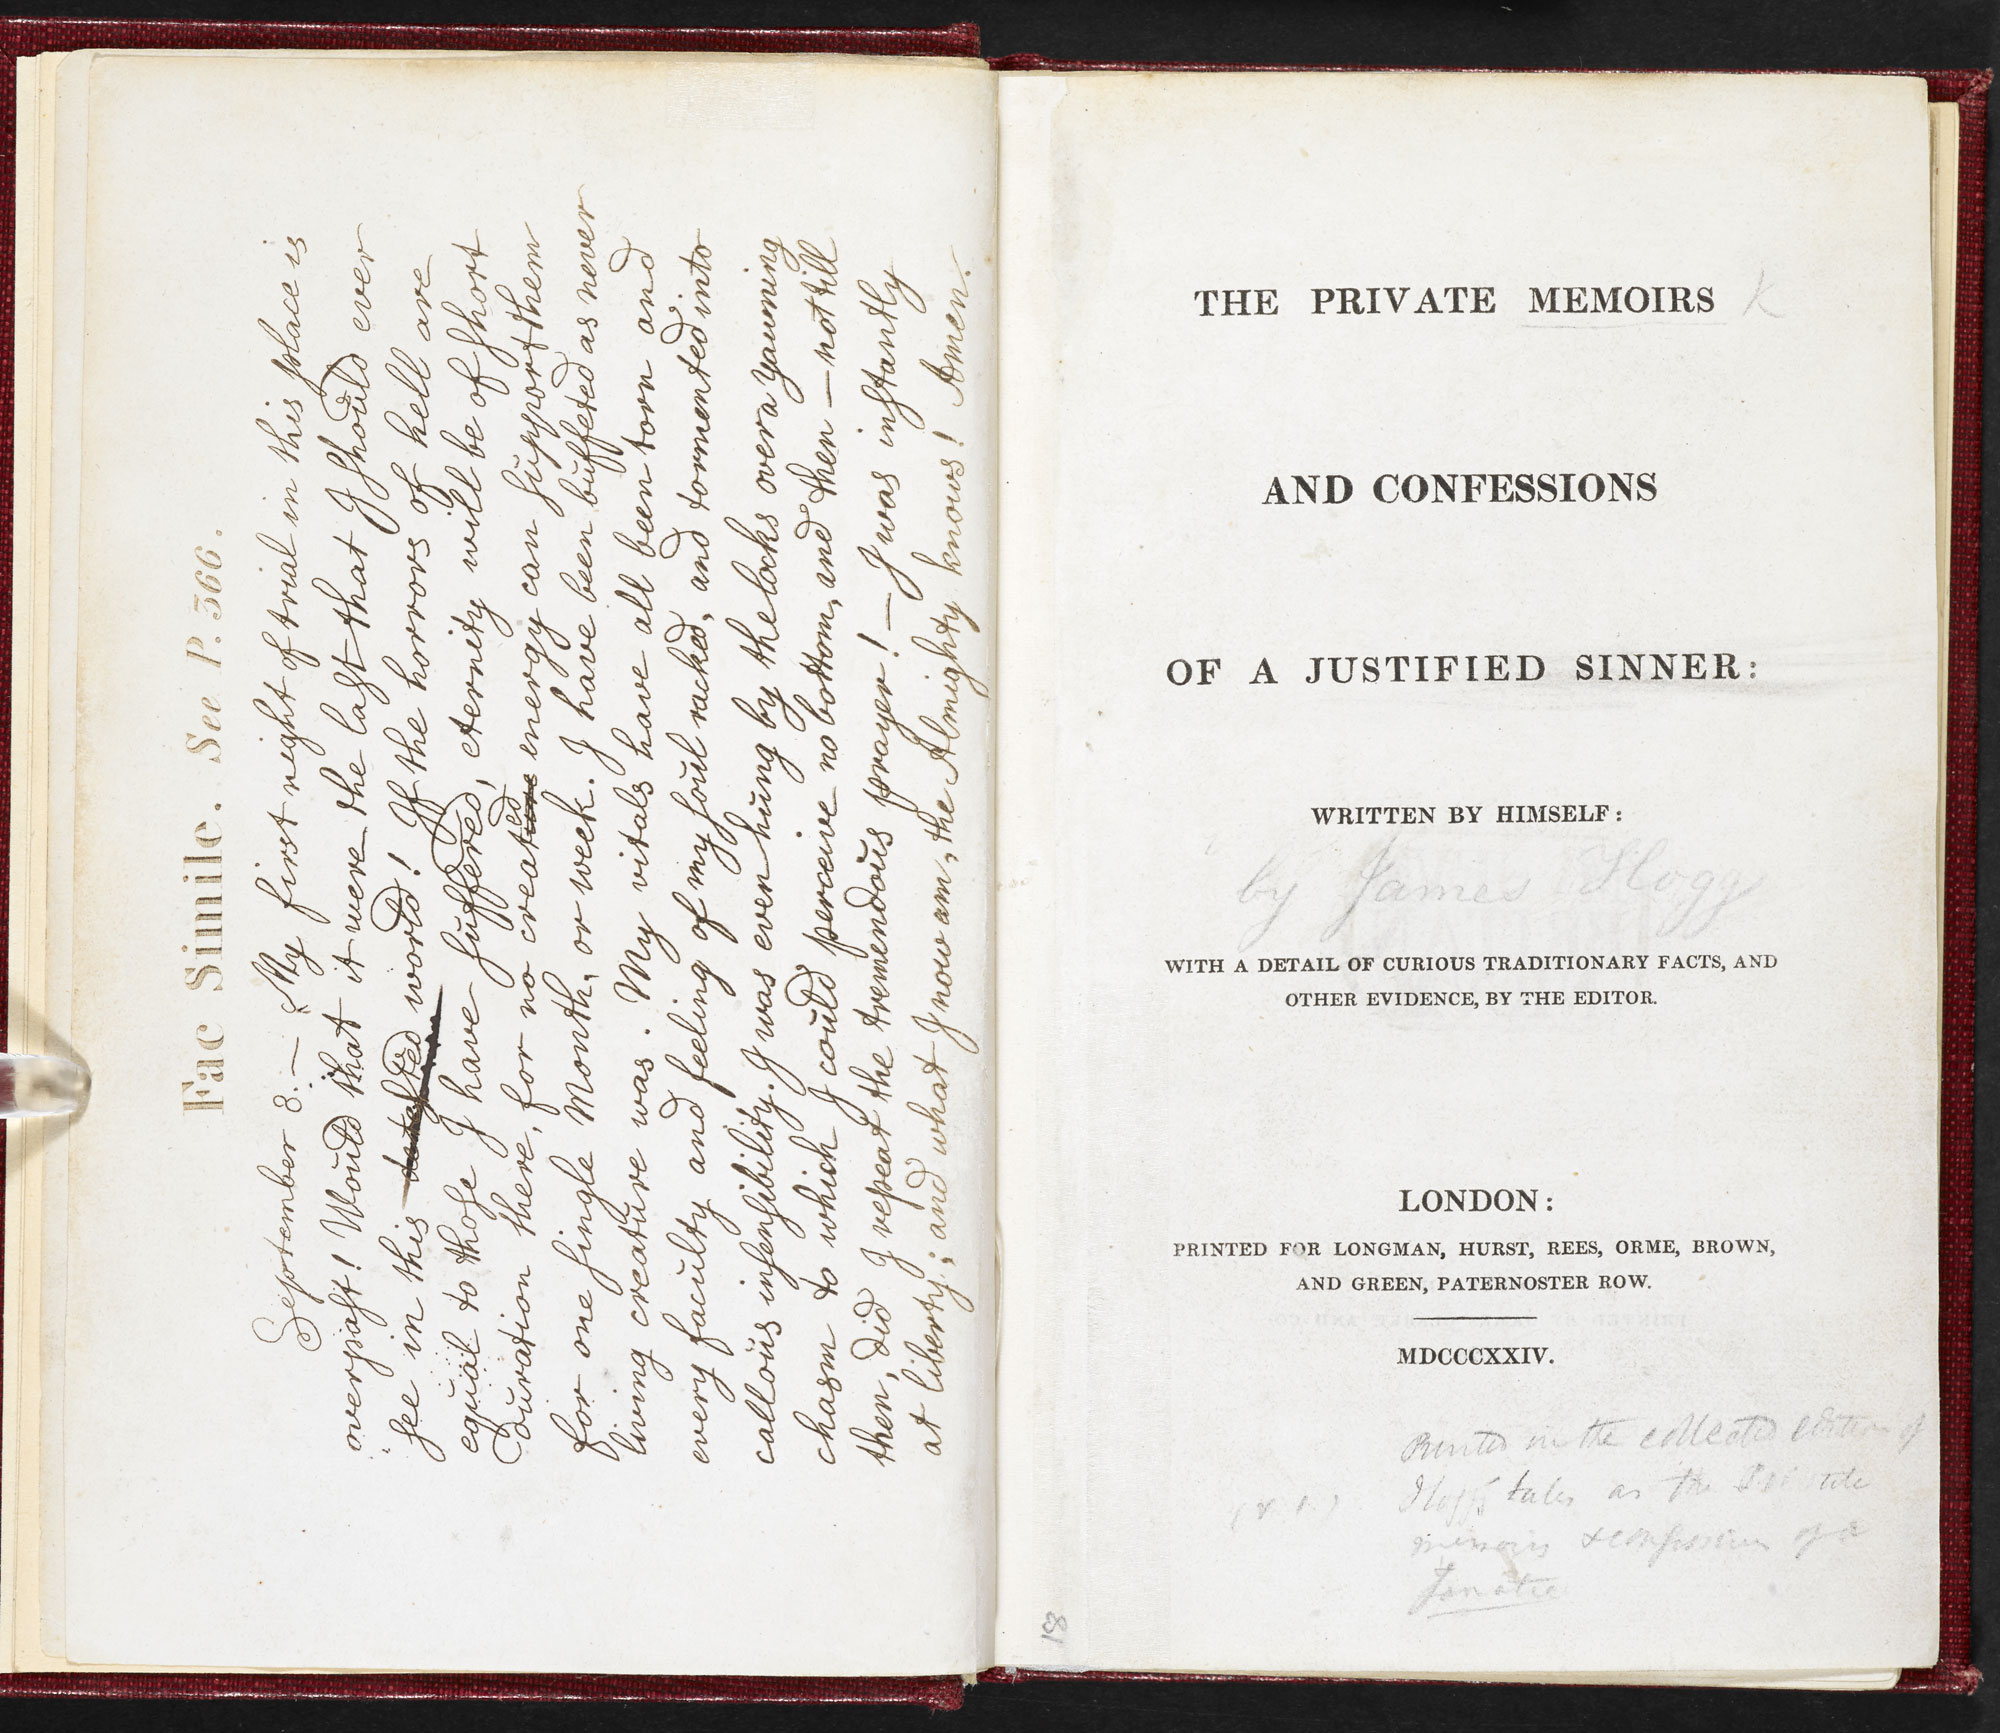 James Hogg, The Private Memoirs and Confessions of a Justified Sinner [page: frontispiece and title page]